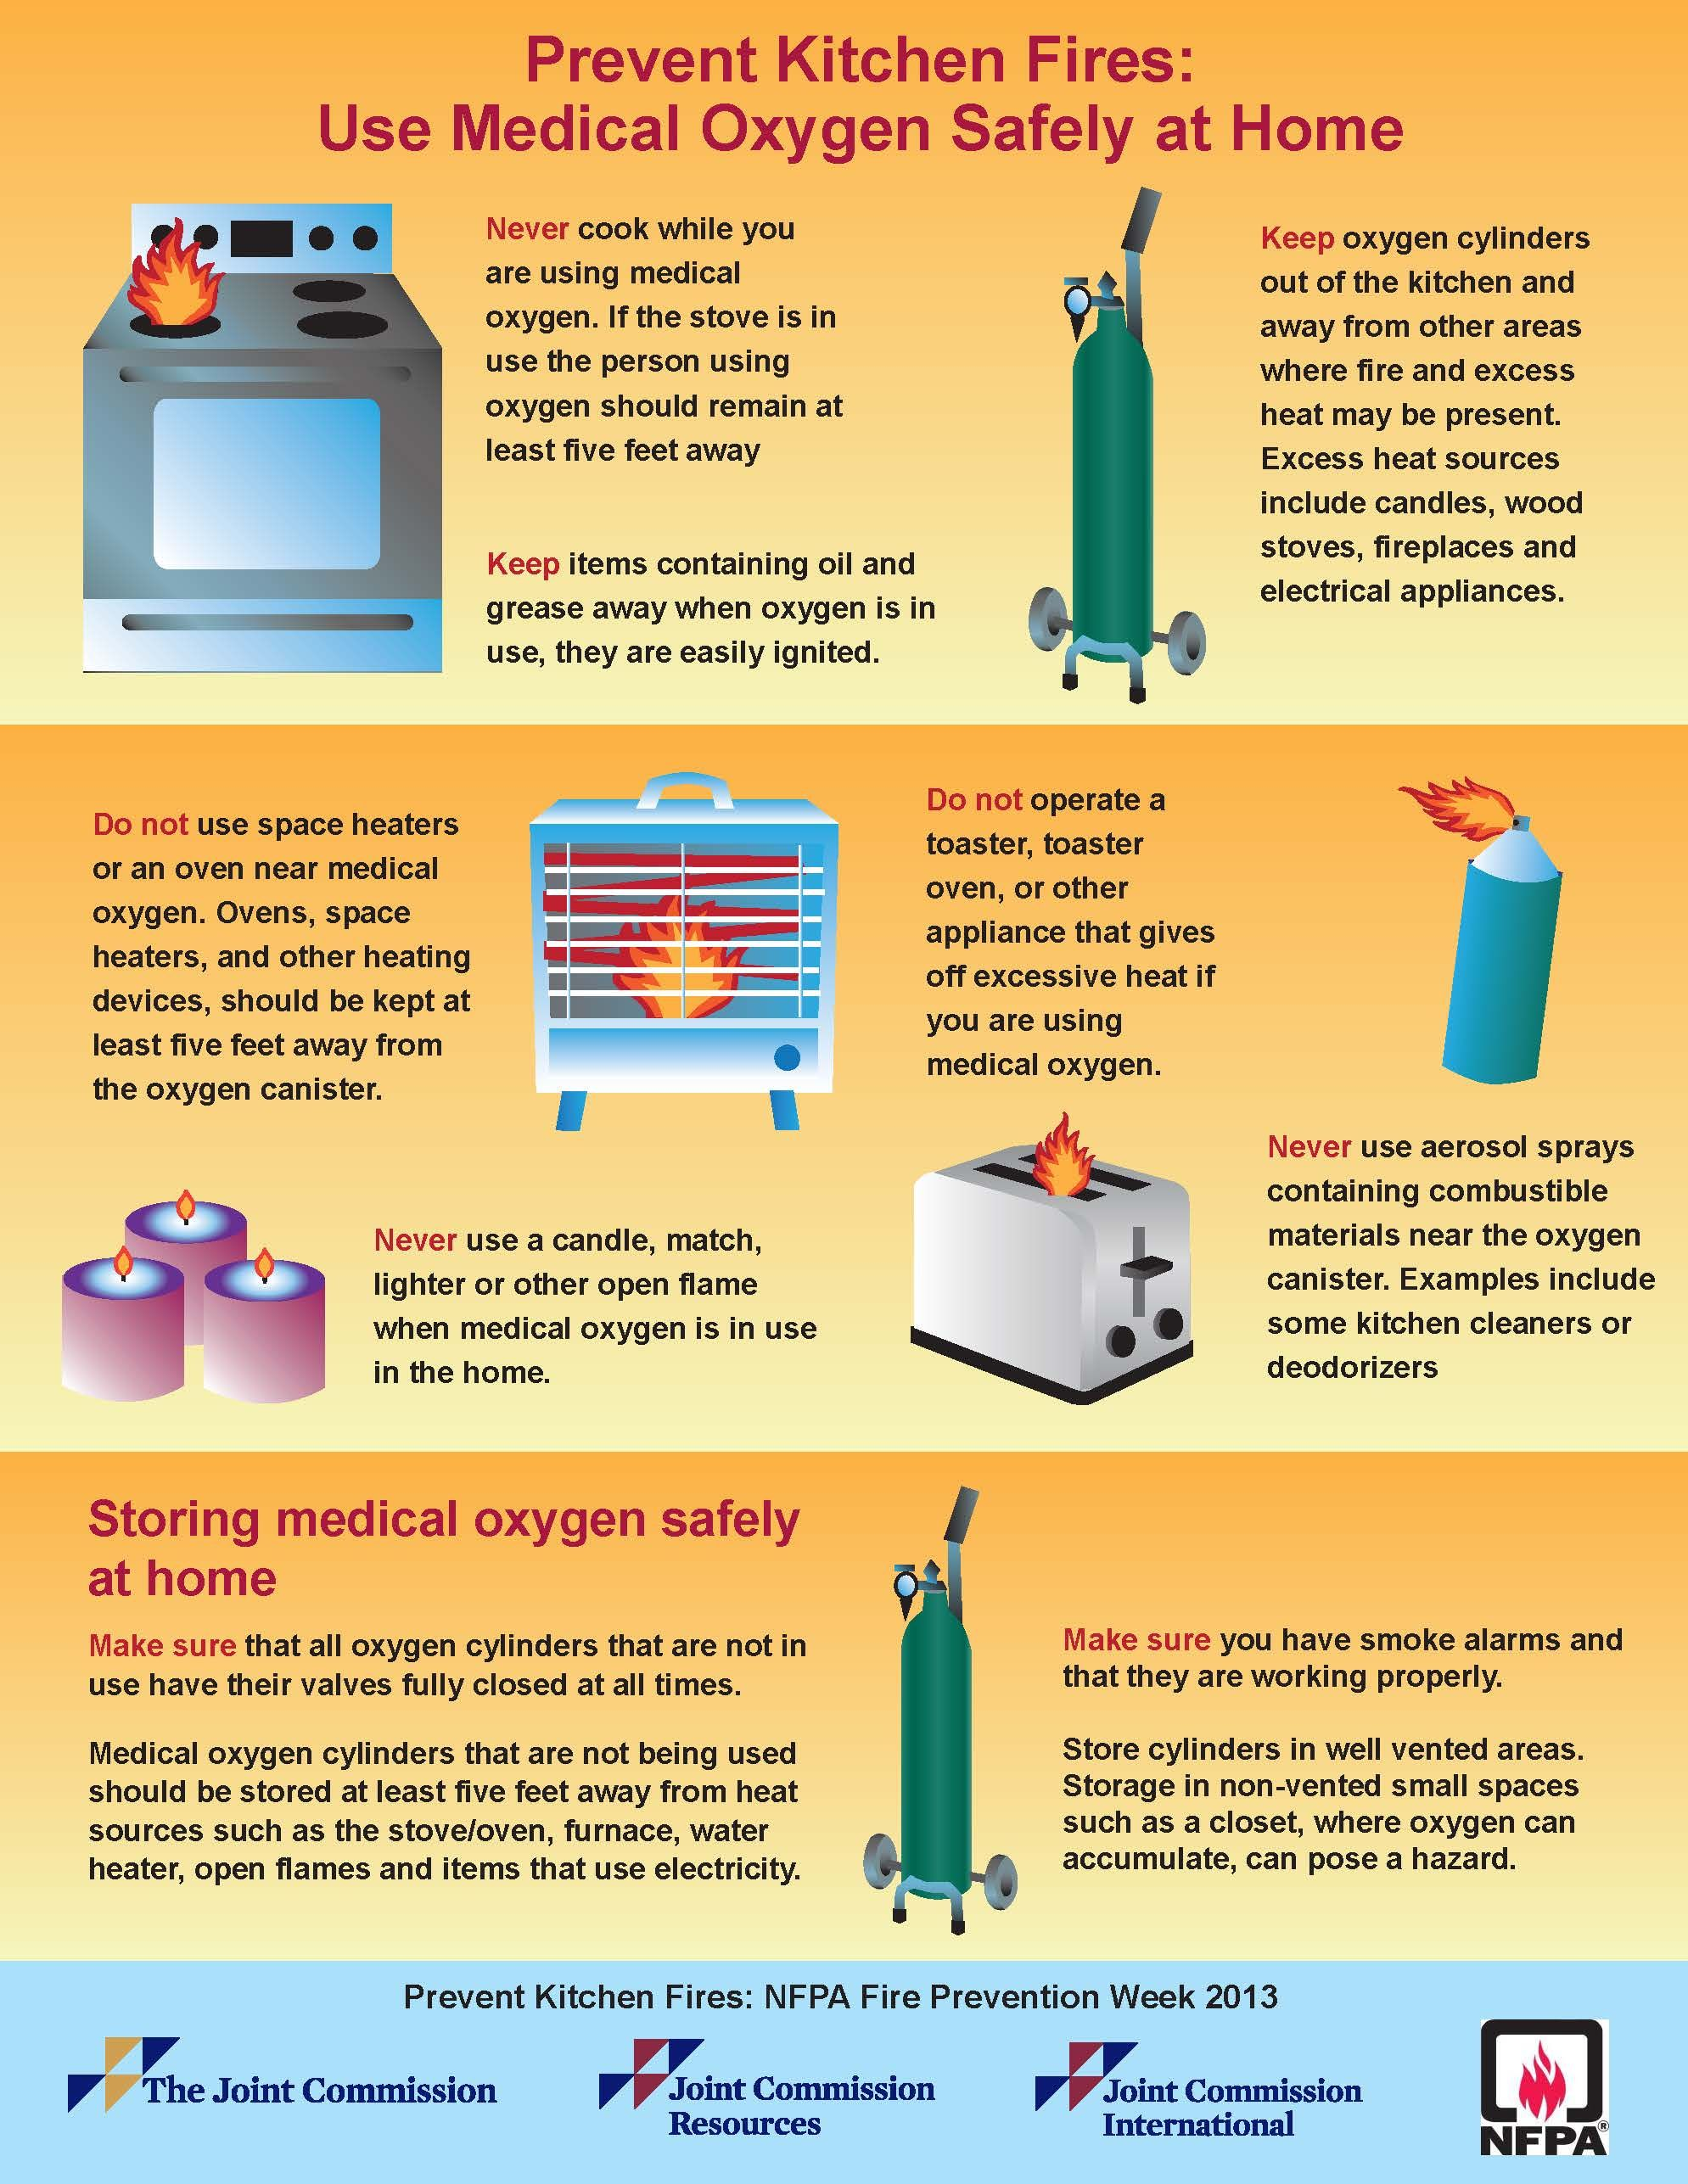 Infographic Prevent kitchen fires National Fire